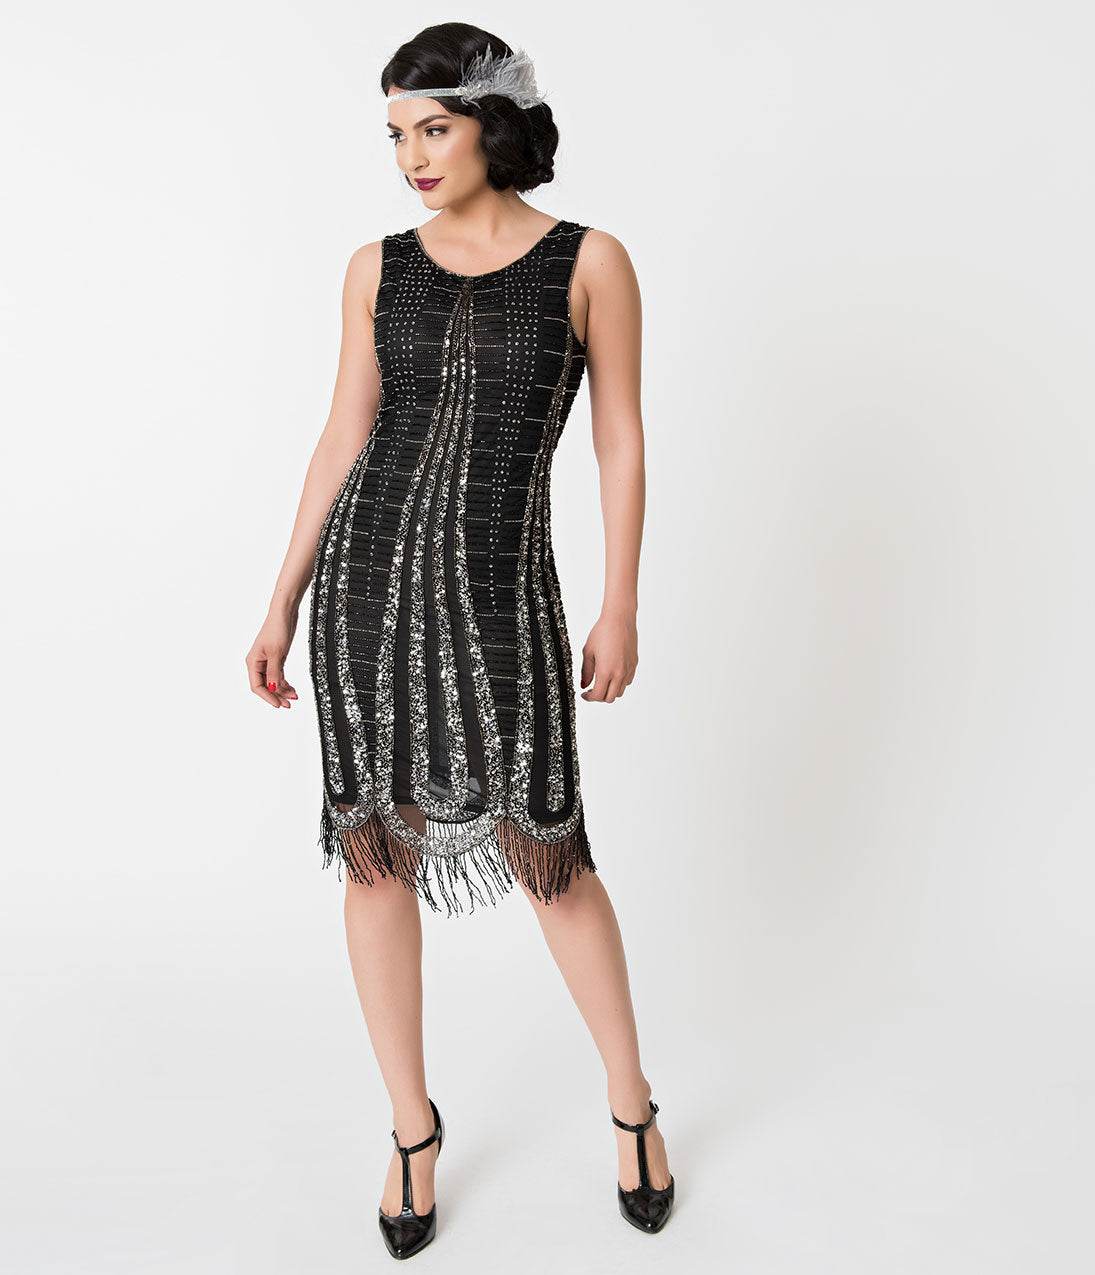 1920s Evening Gowns by Year Unique Vintage Black  Silver Beaded Fringe Romane Cocktail Dress $71.00 AT vintagedancer.com